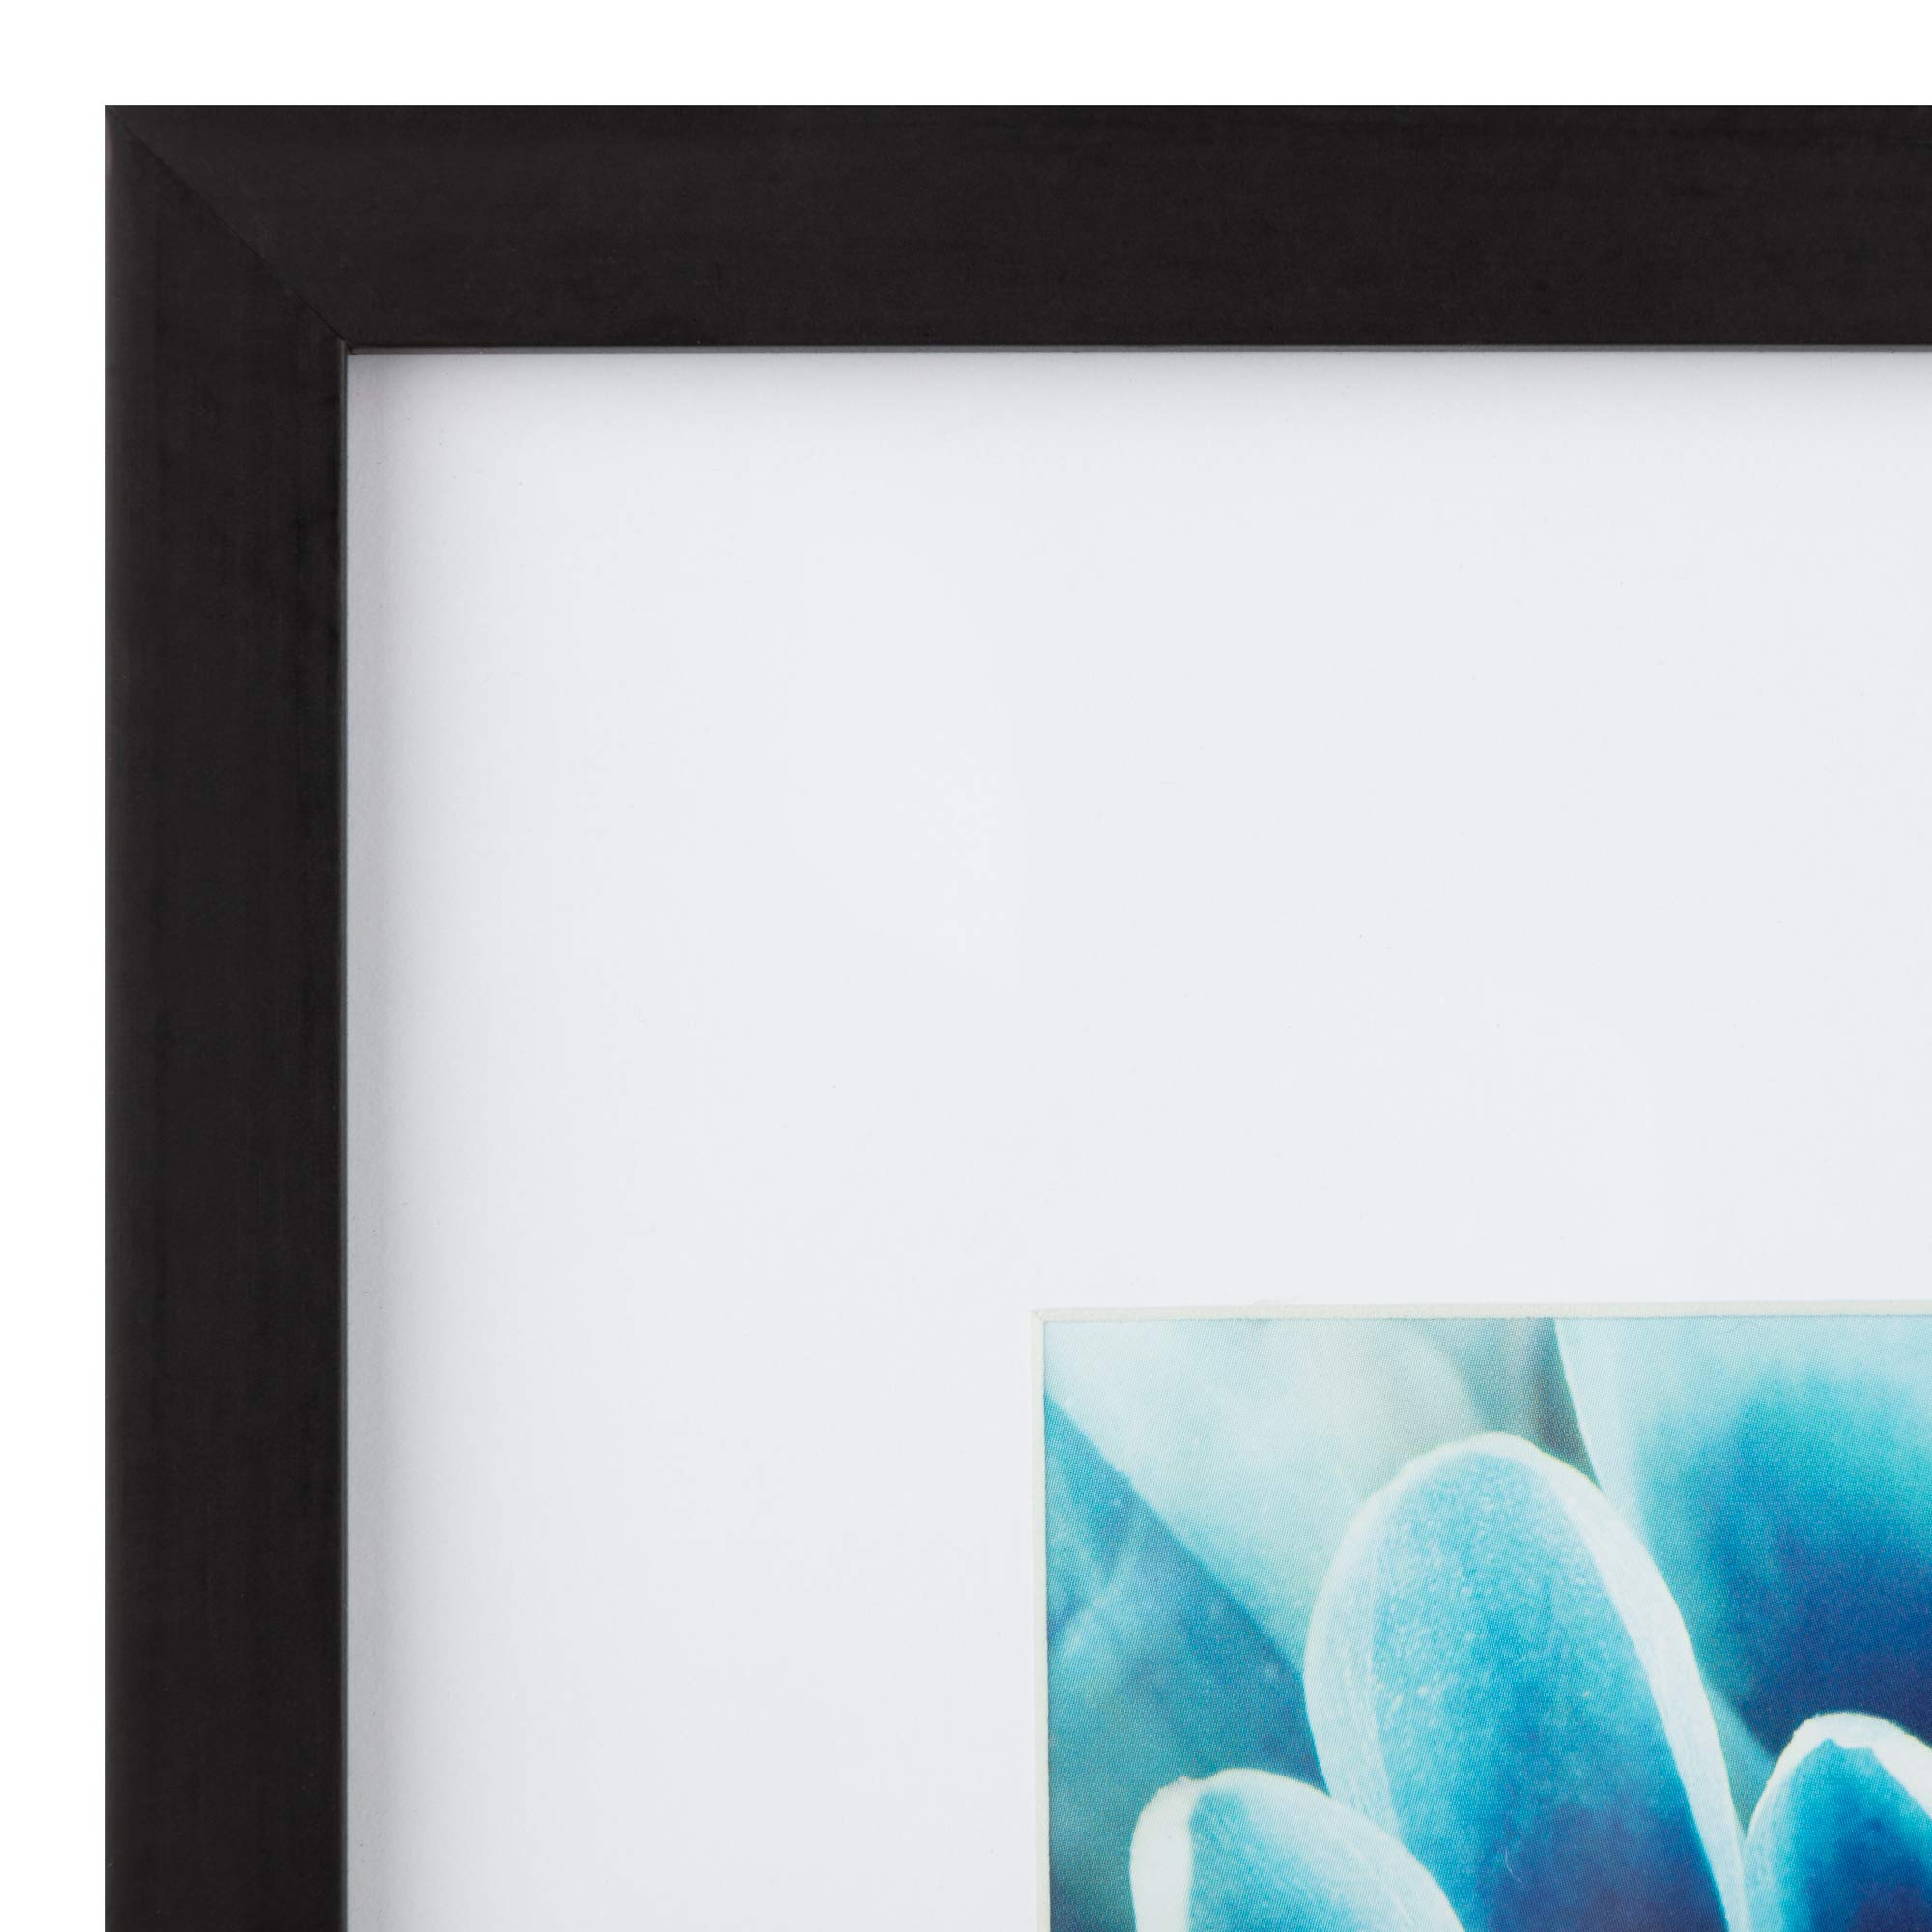 Snap 16x20 Black Wall Picture Frame with Single White Mat for 11x14 Picture by Snap (Image #2)